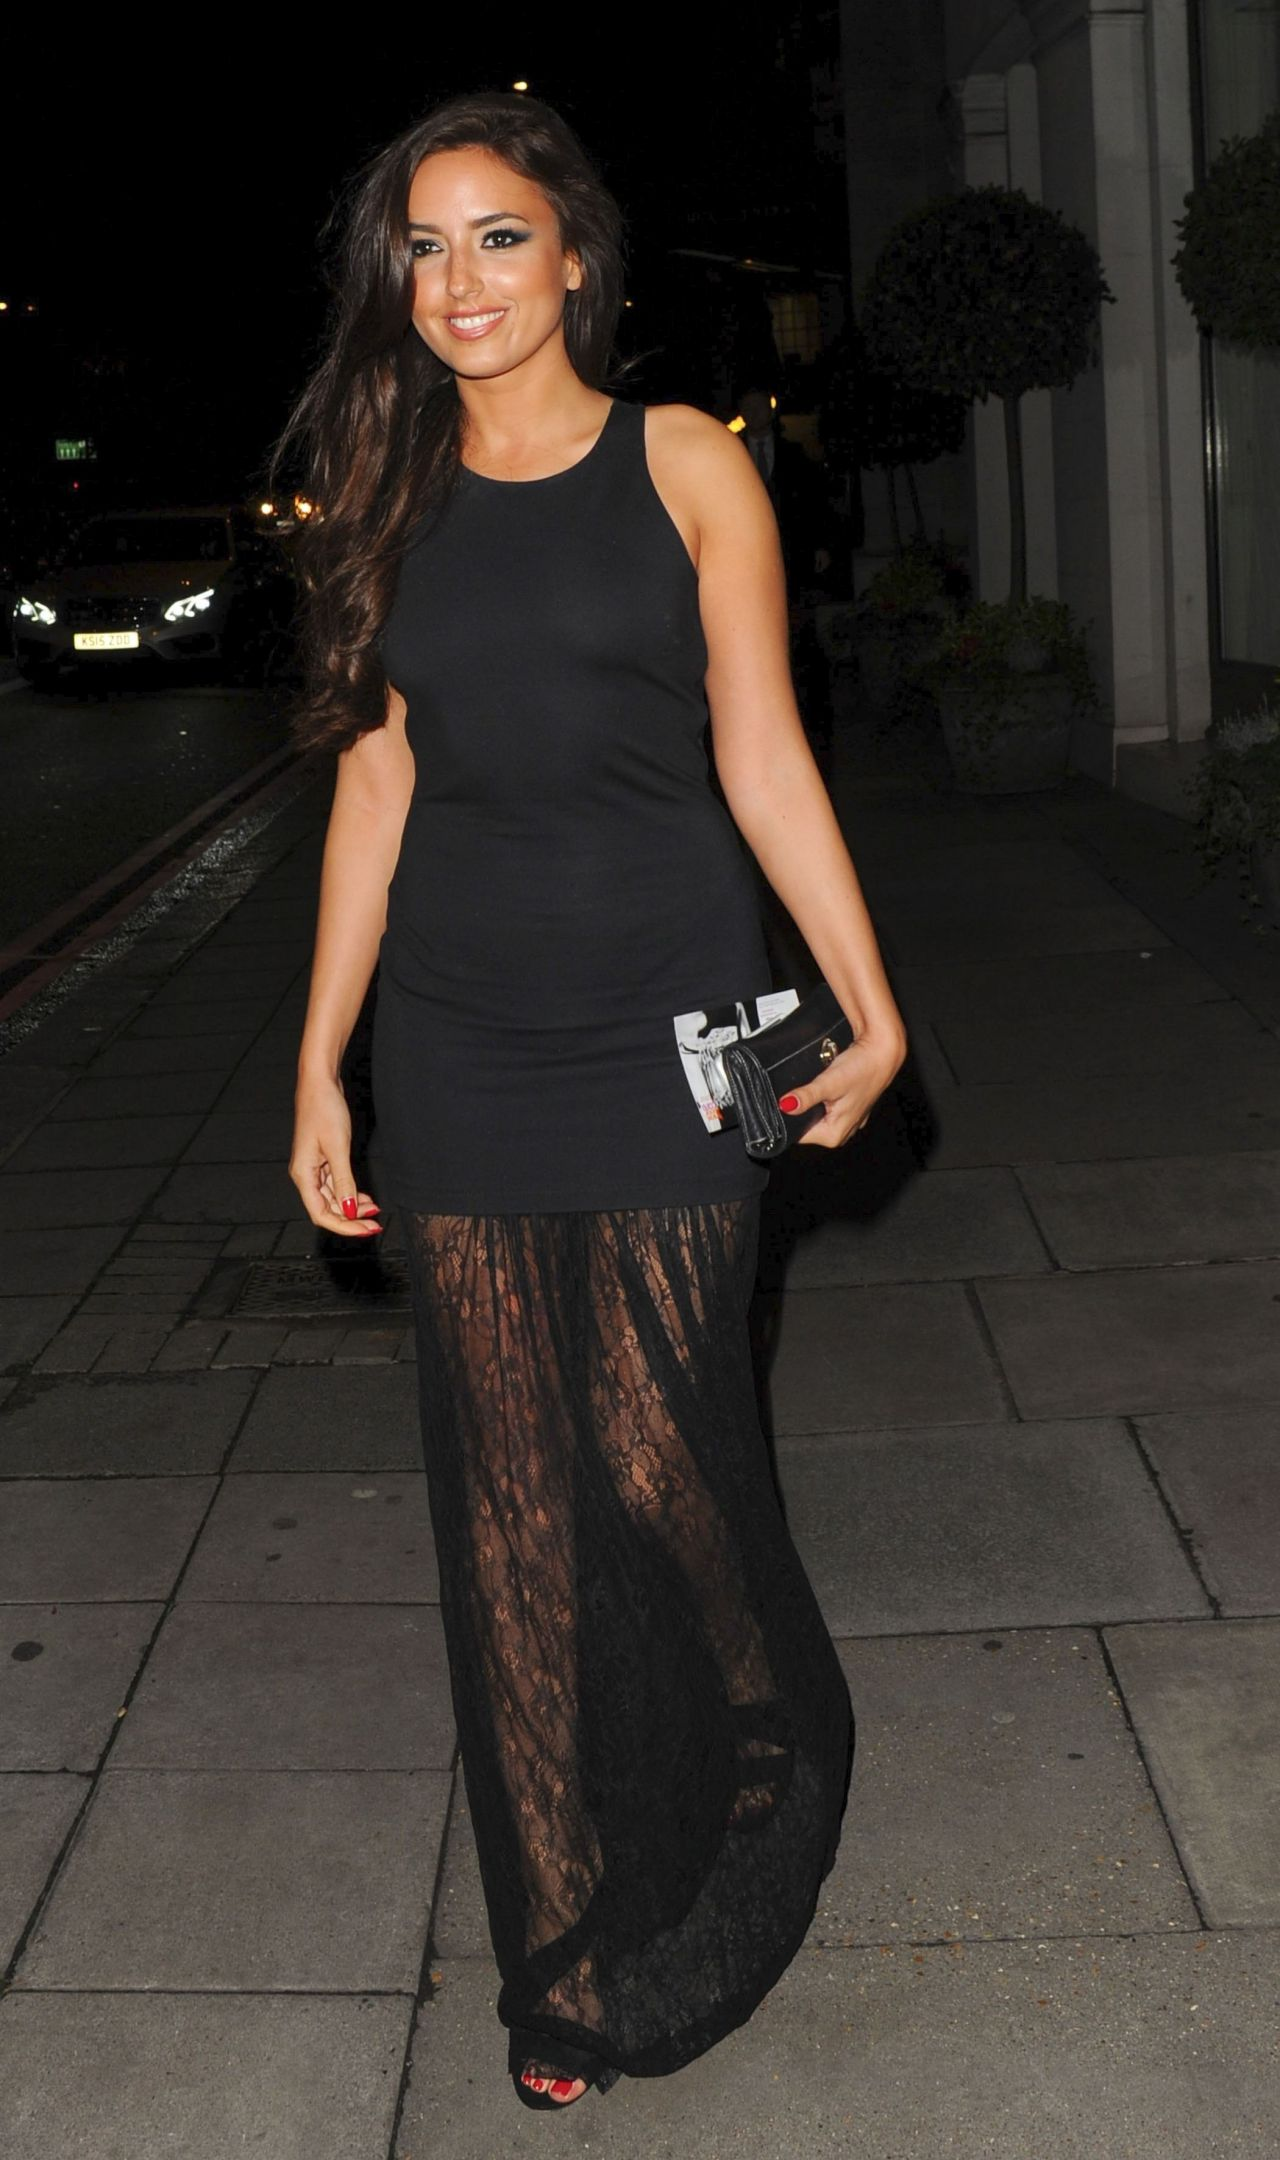 Nadia Forde The Breast Cancer Care Fashion Show In